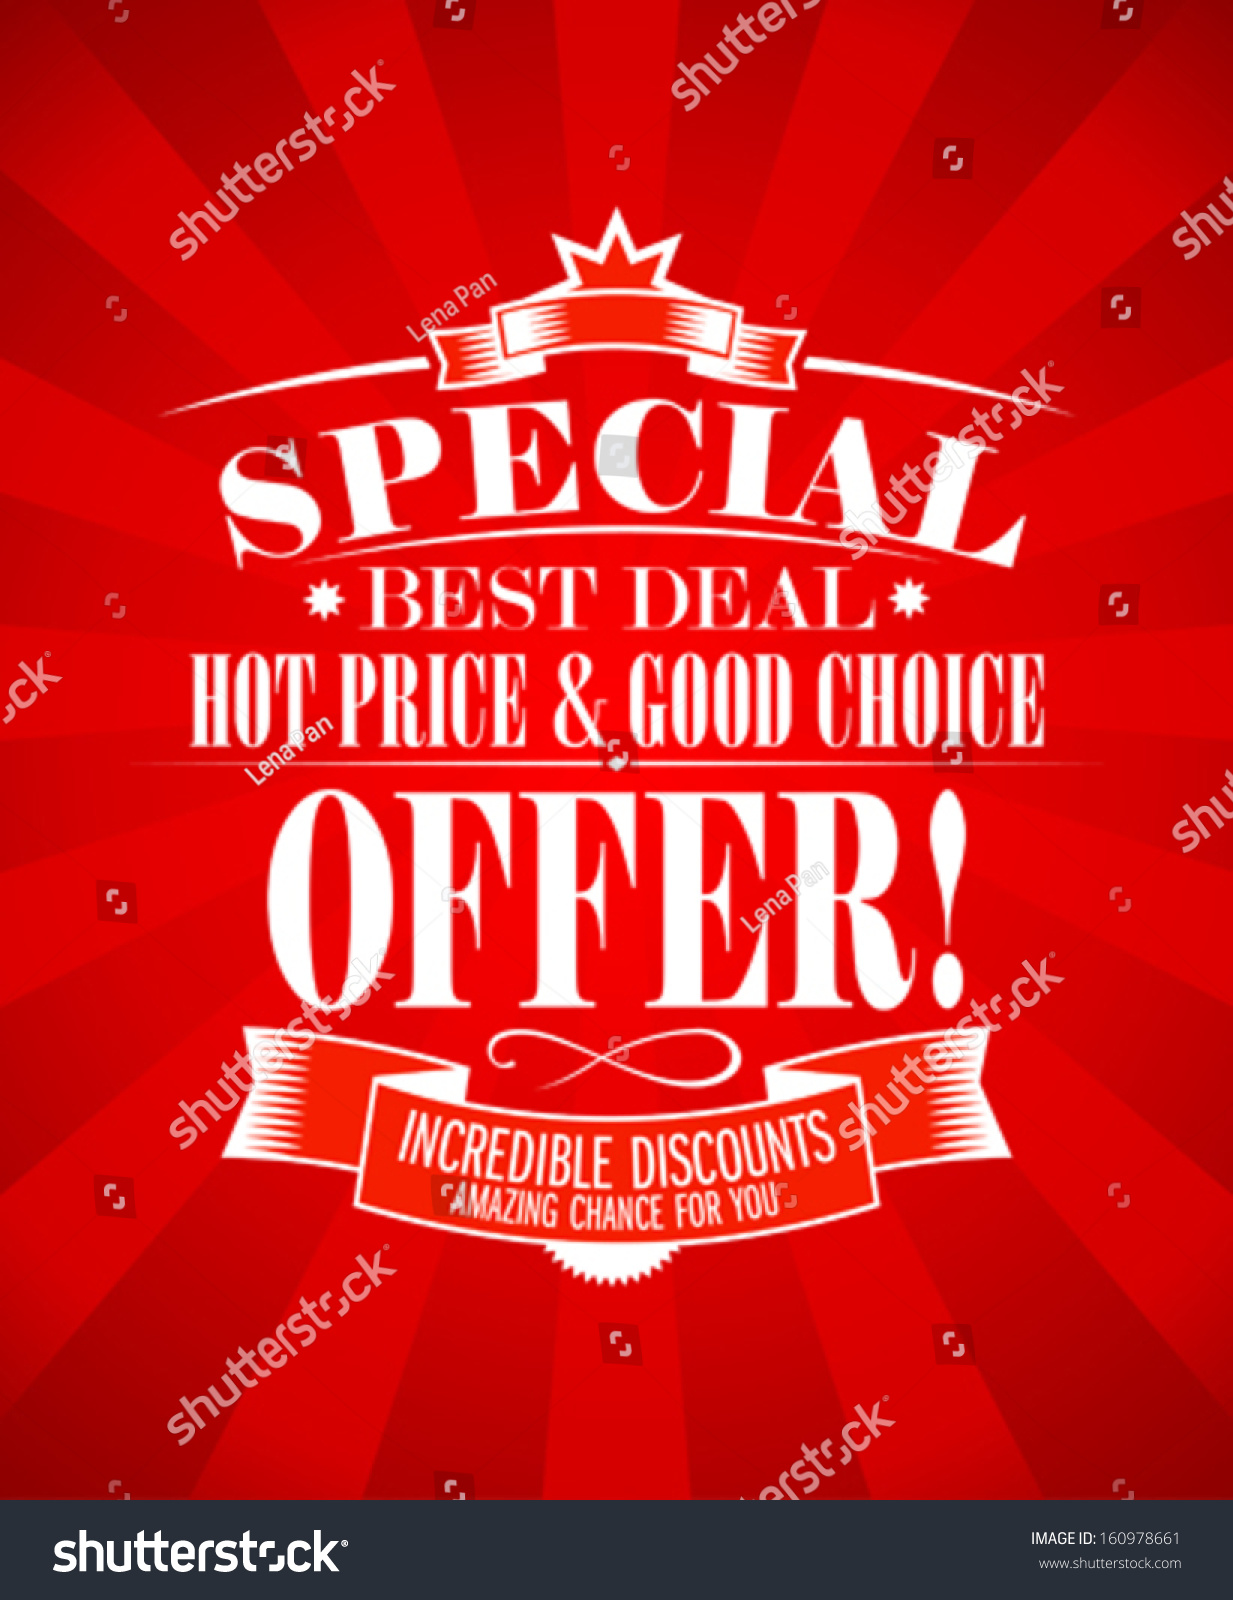 best deal special offer design template stock vector  best deal special offer design template